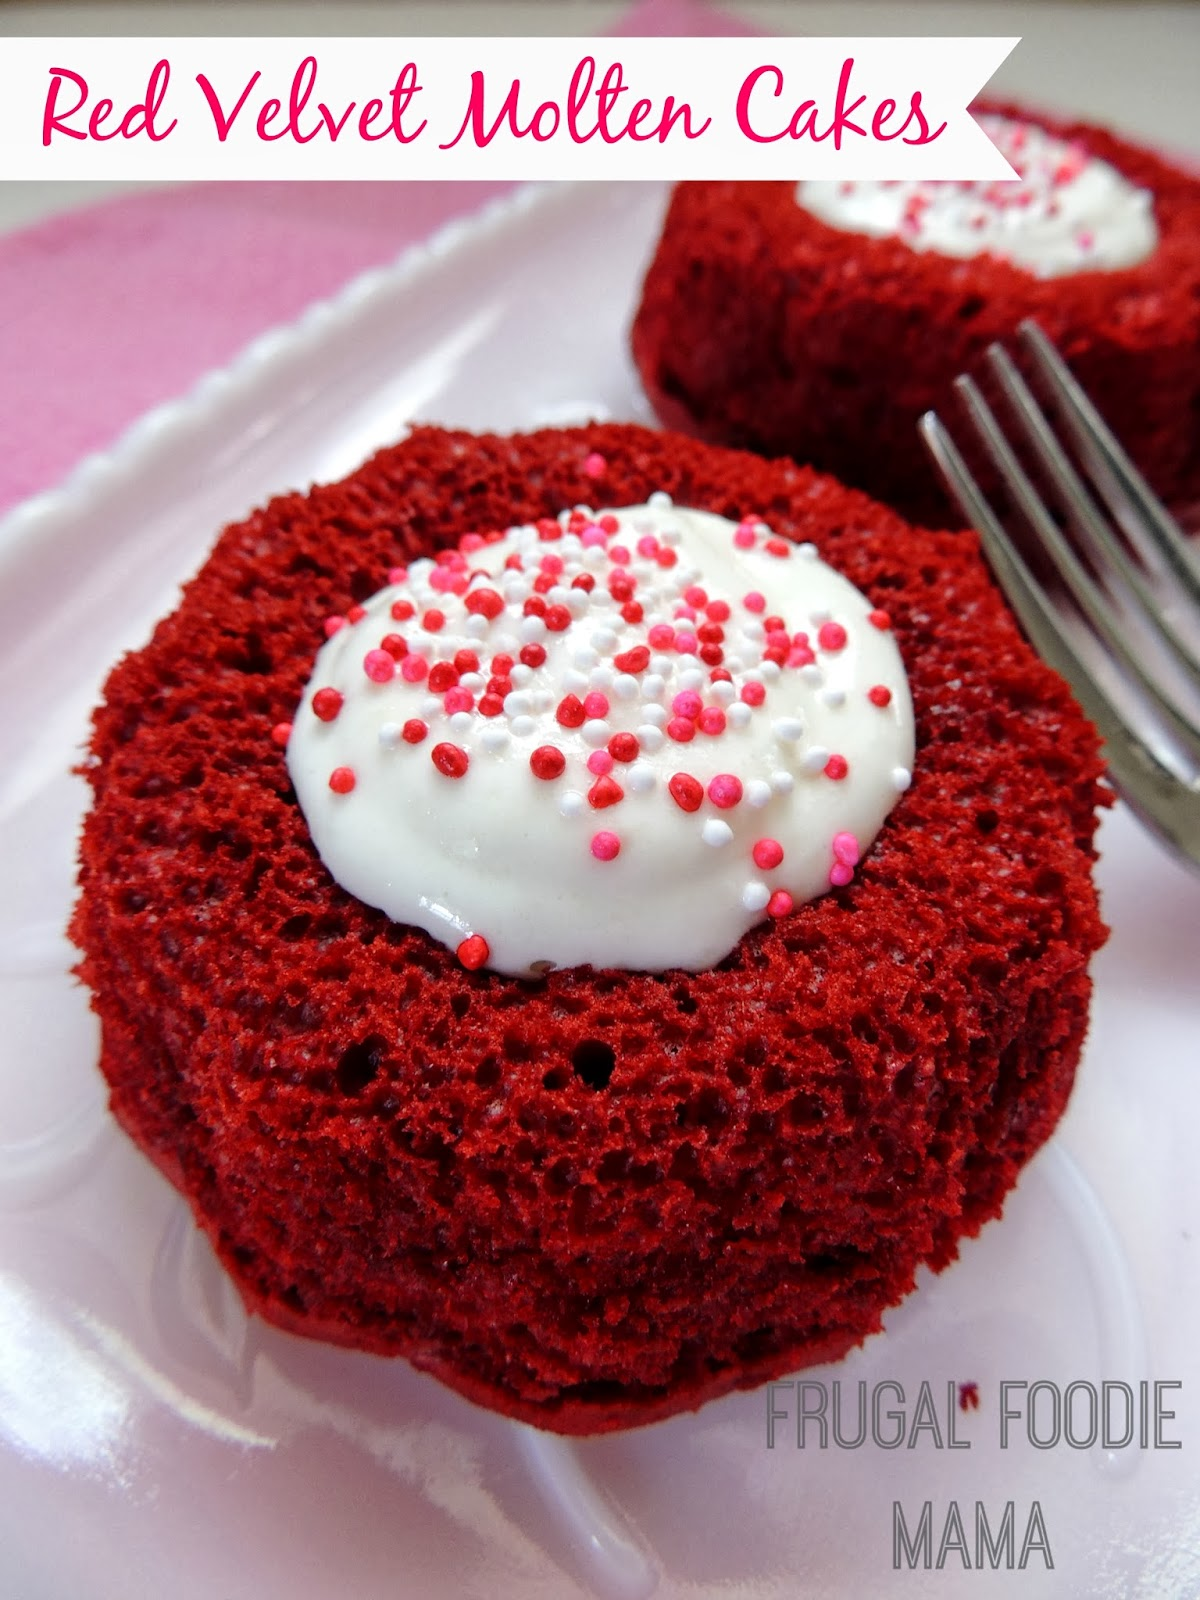 These easy Red Velvet Molten Cakes with an ooey, gooey cream cheese center start with a red velvet cake mix and are the perfect Valentine's Day dessert.